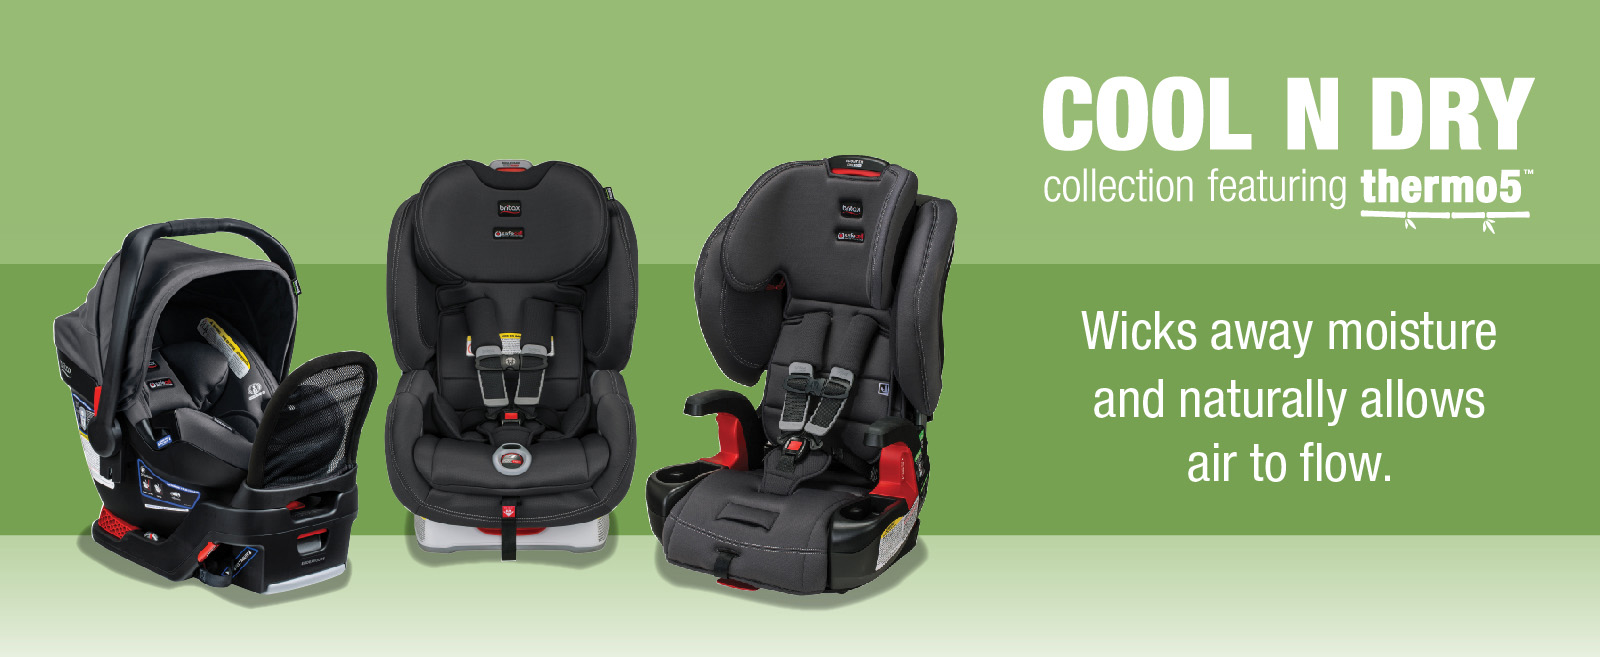 Three Car Seats Part Of The Cool N Dry Collection